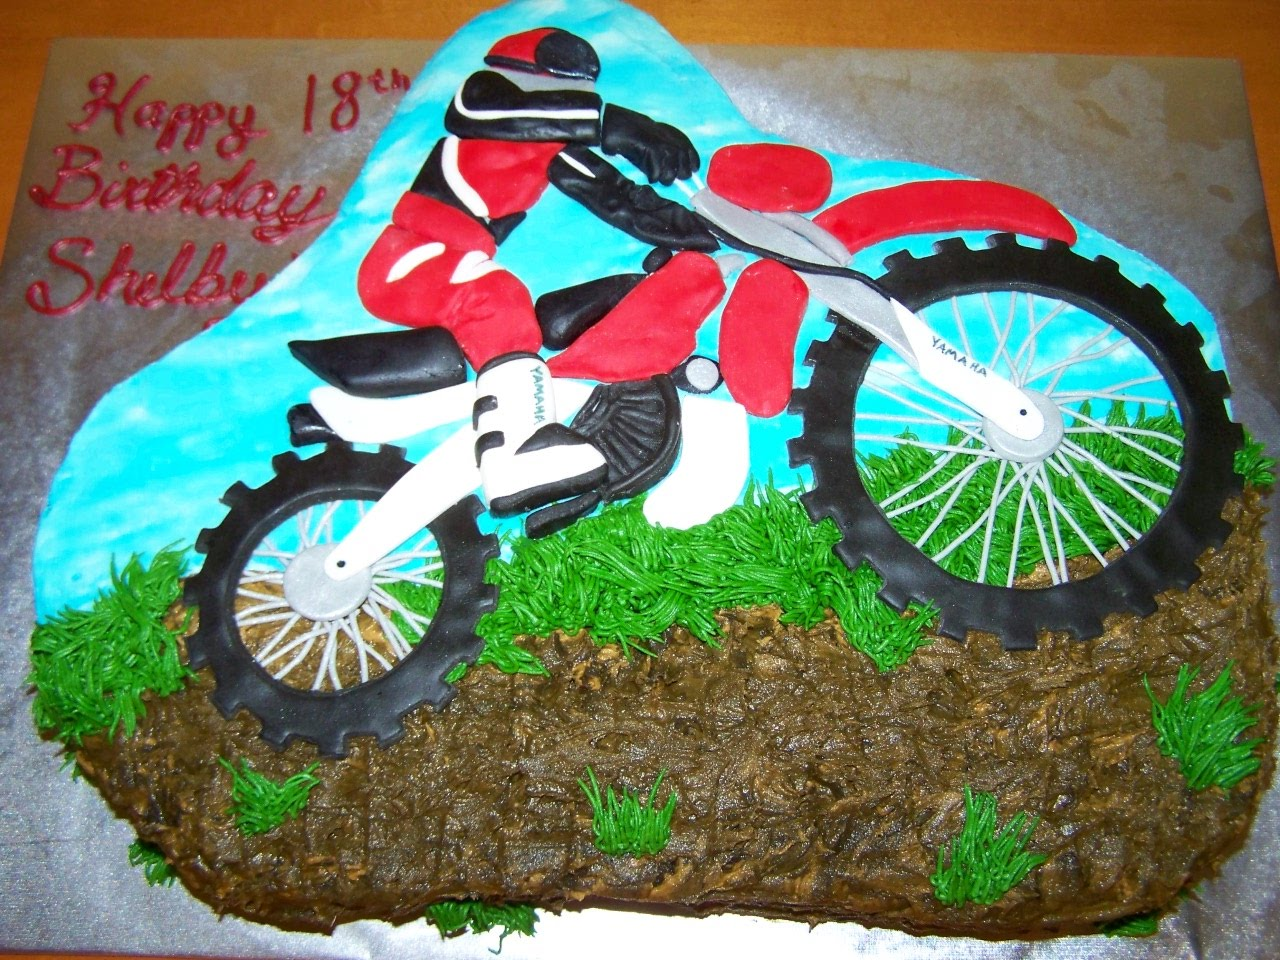 dirt bike cake - photo #7